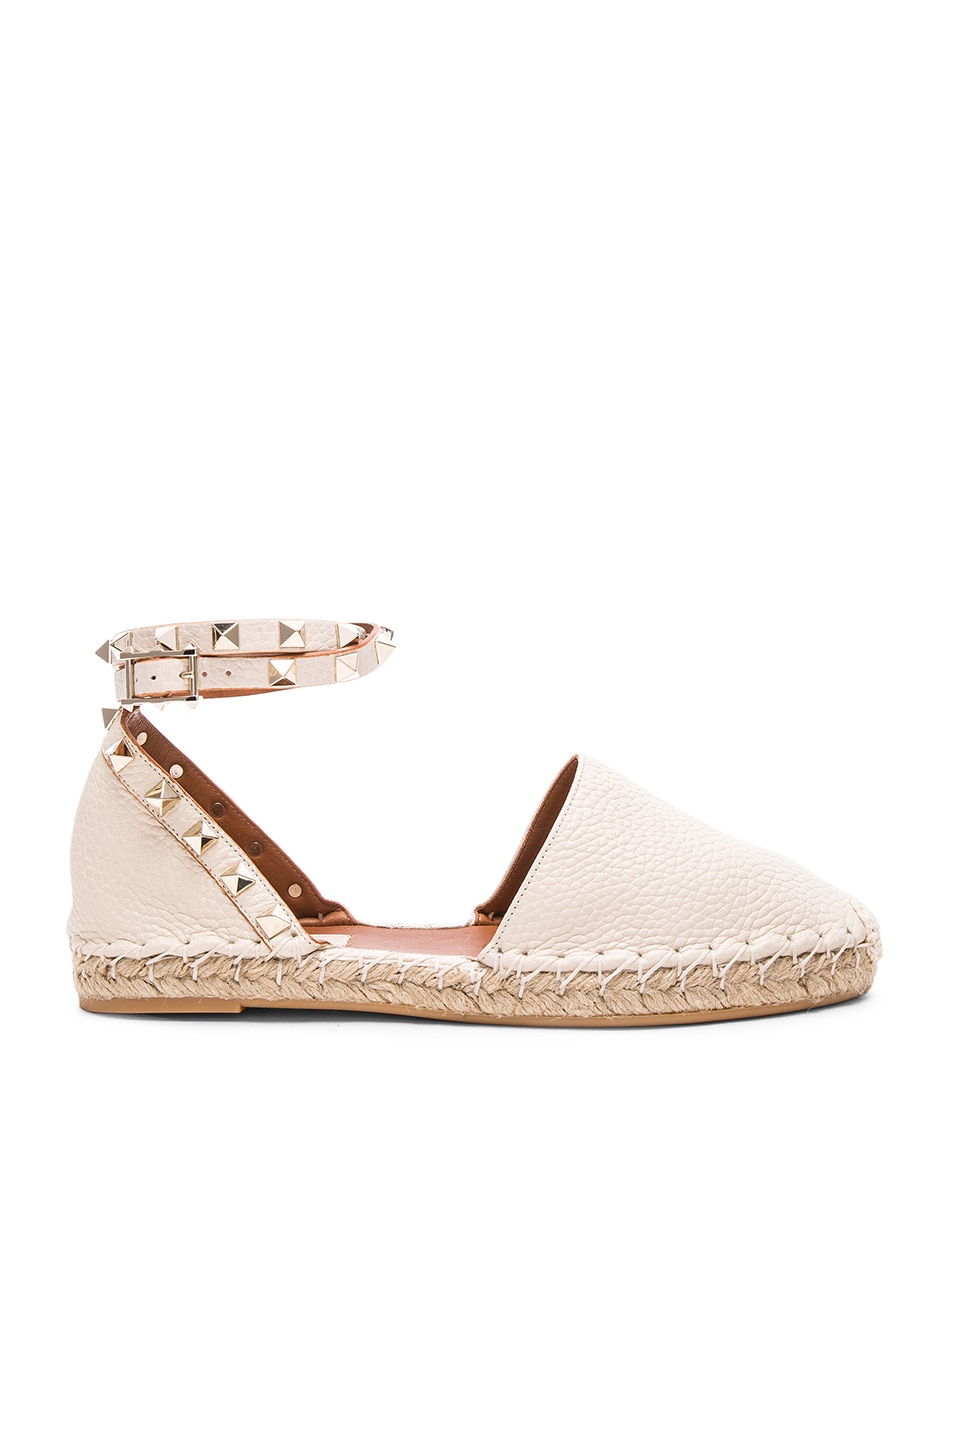 Image 1 of Valentino Rockstud Double Flat Leather Espadrilles in Light Ivory